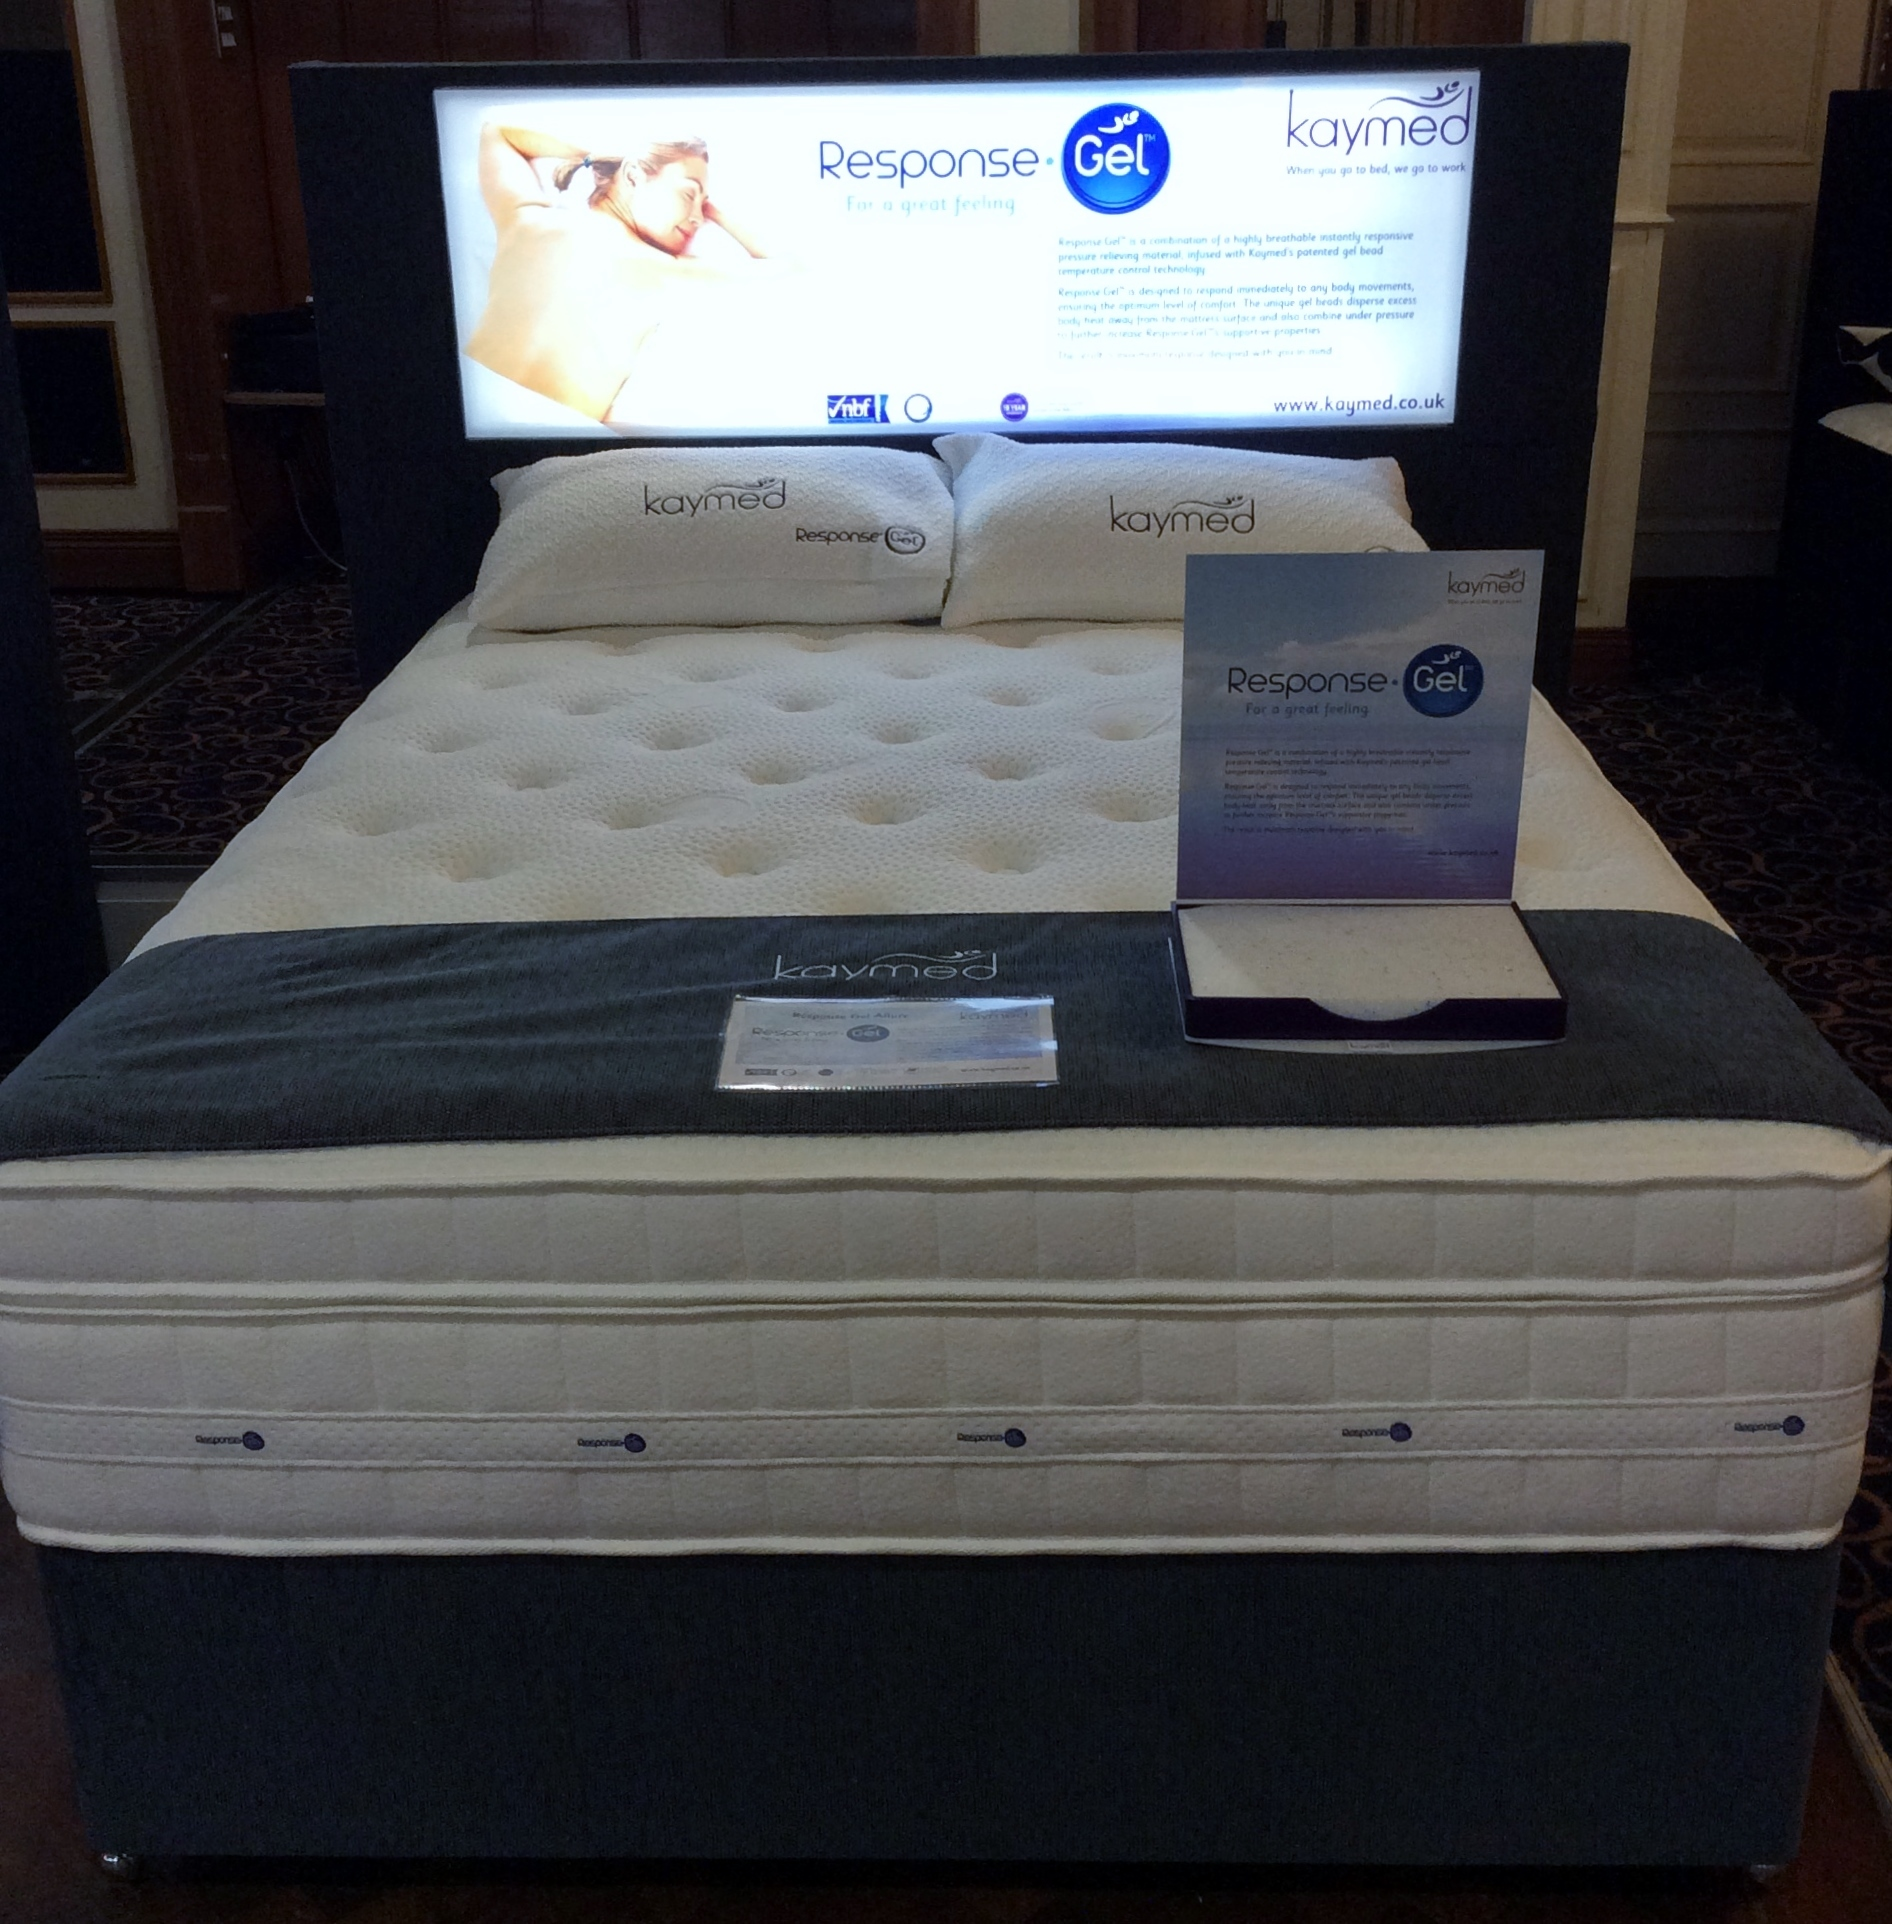 Kaymed Response Gel Mattresses And Beds